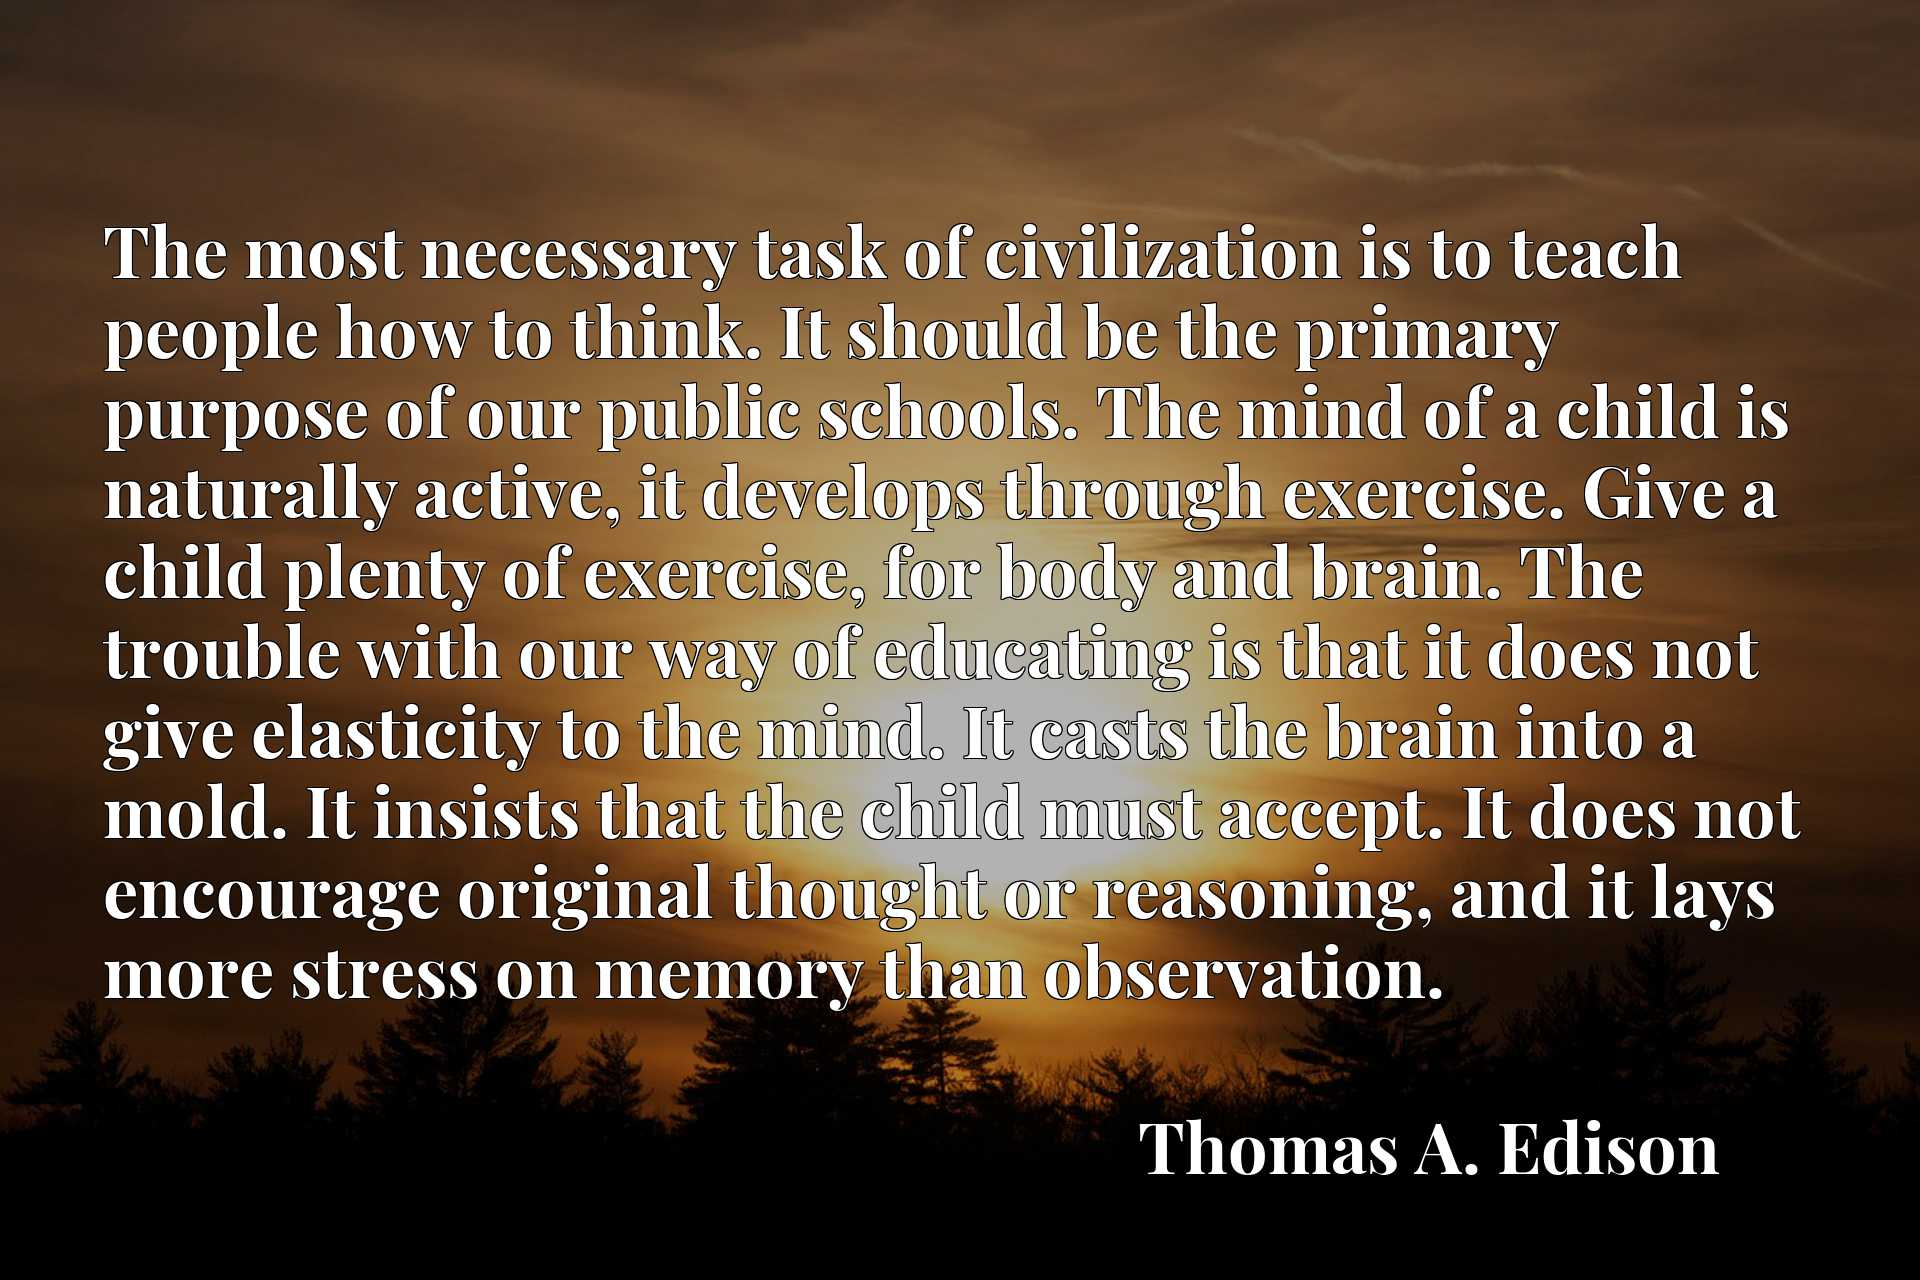 The most necessary task of civilization is to teach people how to think. It should be the primary purpose of our public schools. The mind of a child is naturally active, it develops through exercise. Give a child plenty of exercise, for body and brain. The trouble with our way of educating is that it does not give elasticity to the mind. It casts the brain into a mold. It insists that the child must accept. It does not encourage original thought or reasoning, and it lays more stress on memory than observation.